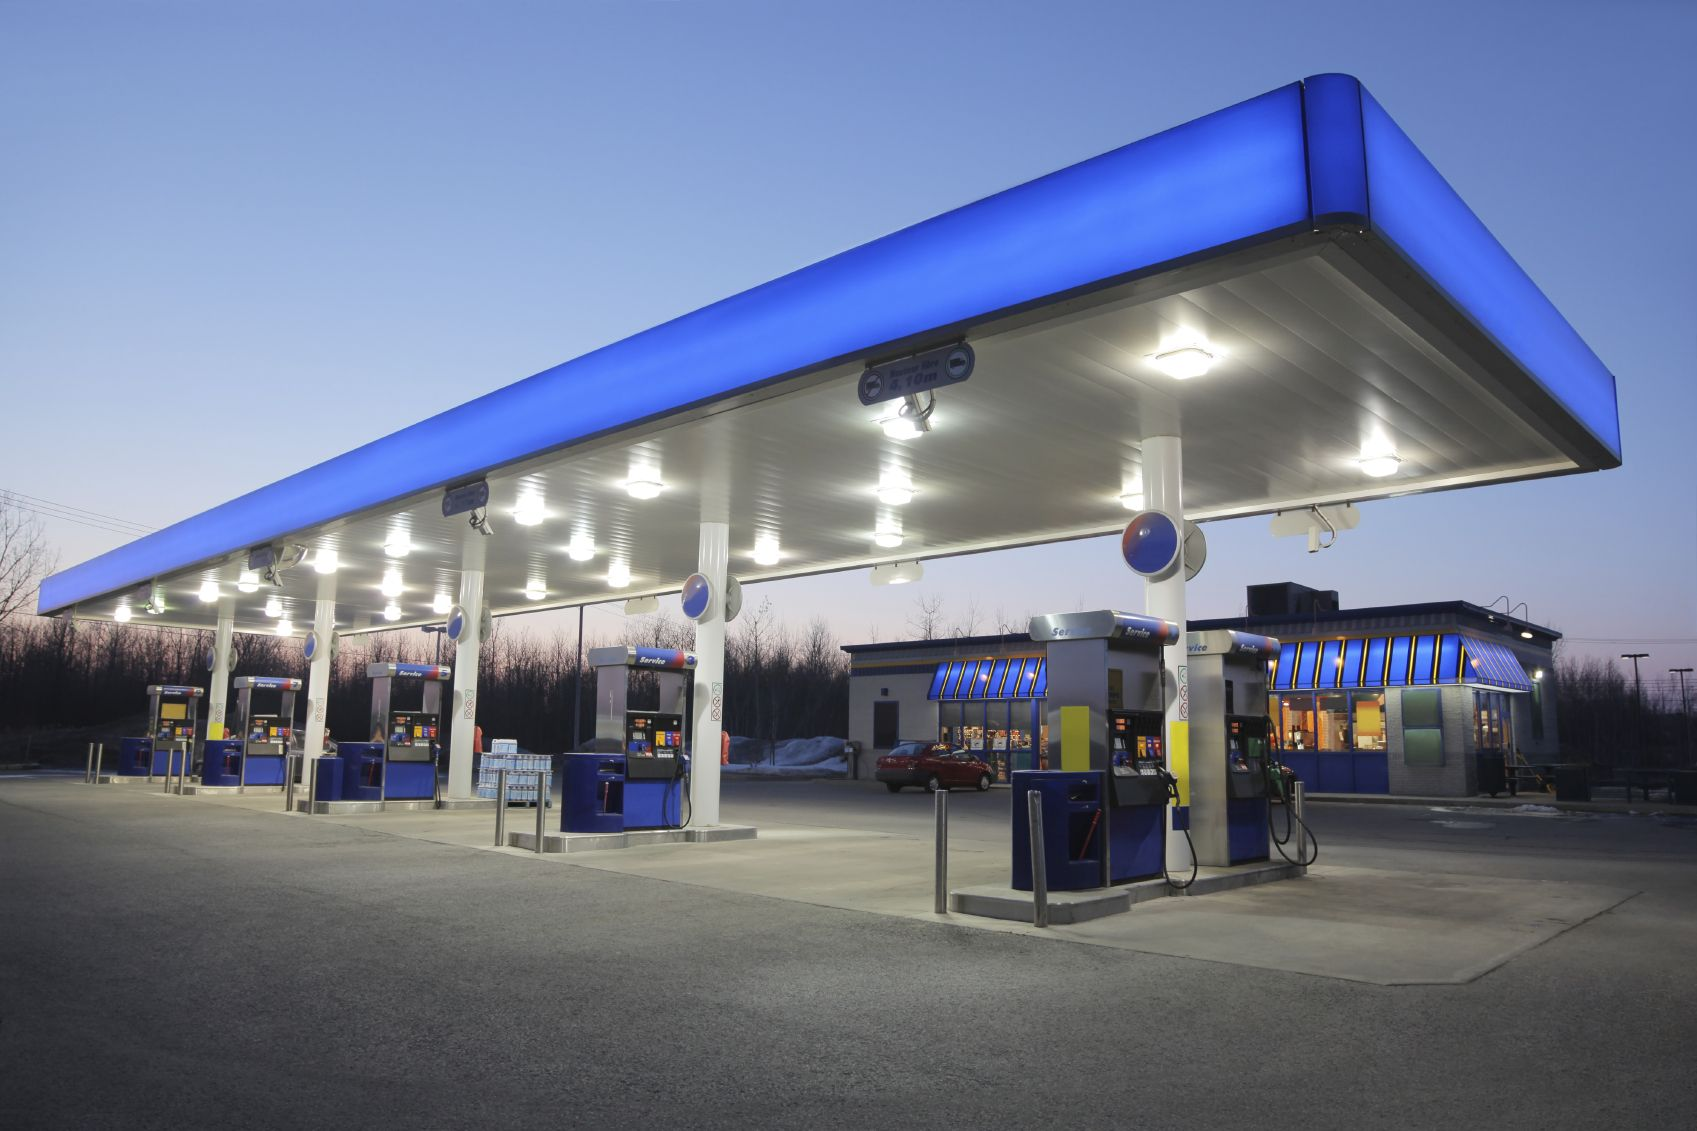 Pin By Anna Acunto On Sticker Gas Station Petrol Station Full Service Gas Station